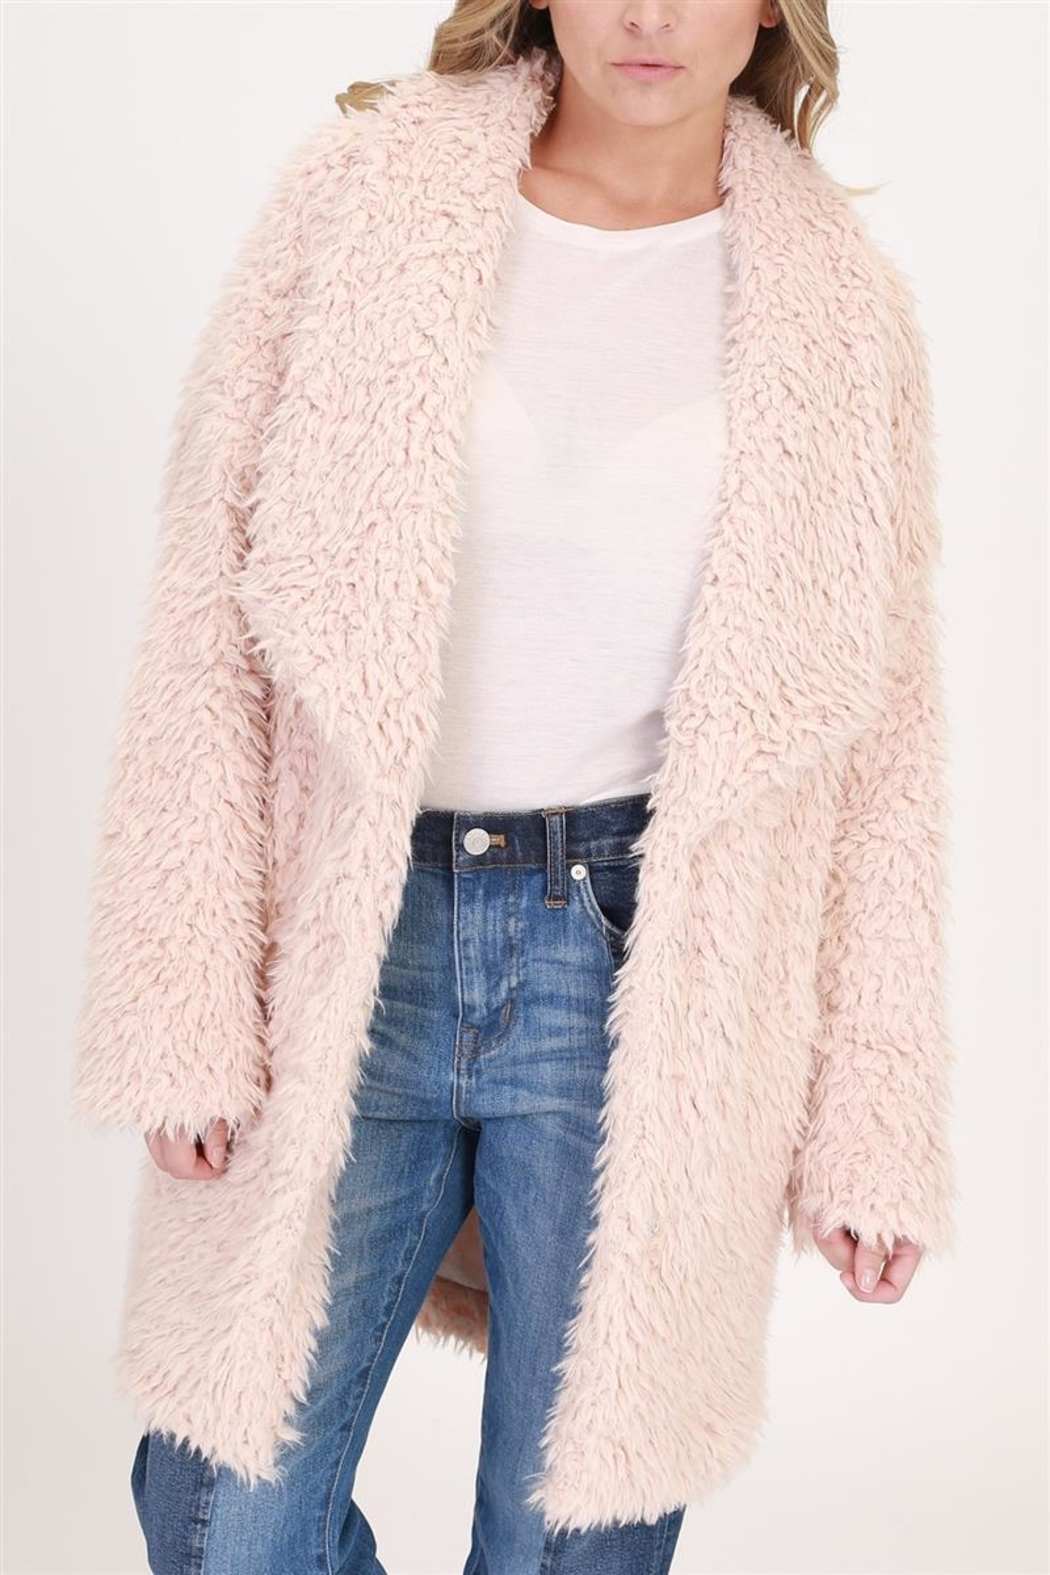 onetheland Faux Fur Jacket - Main Image